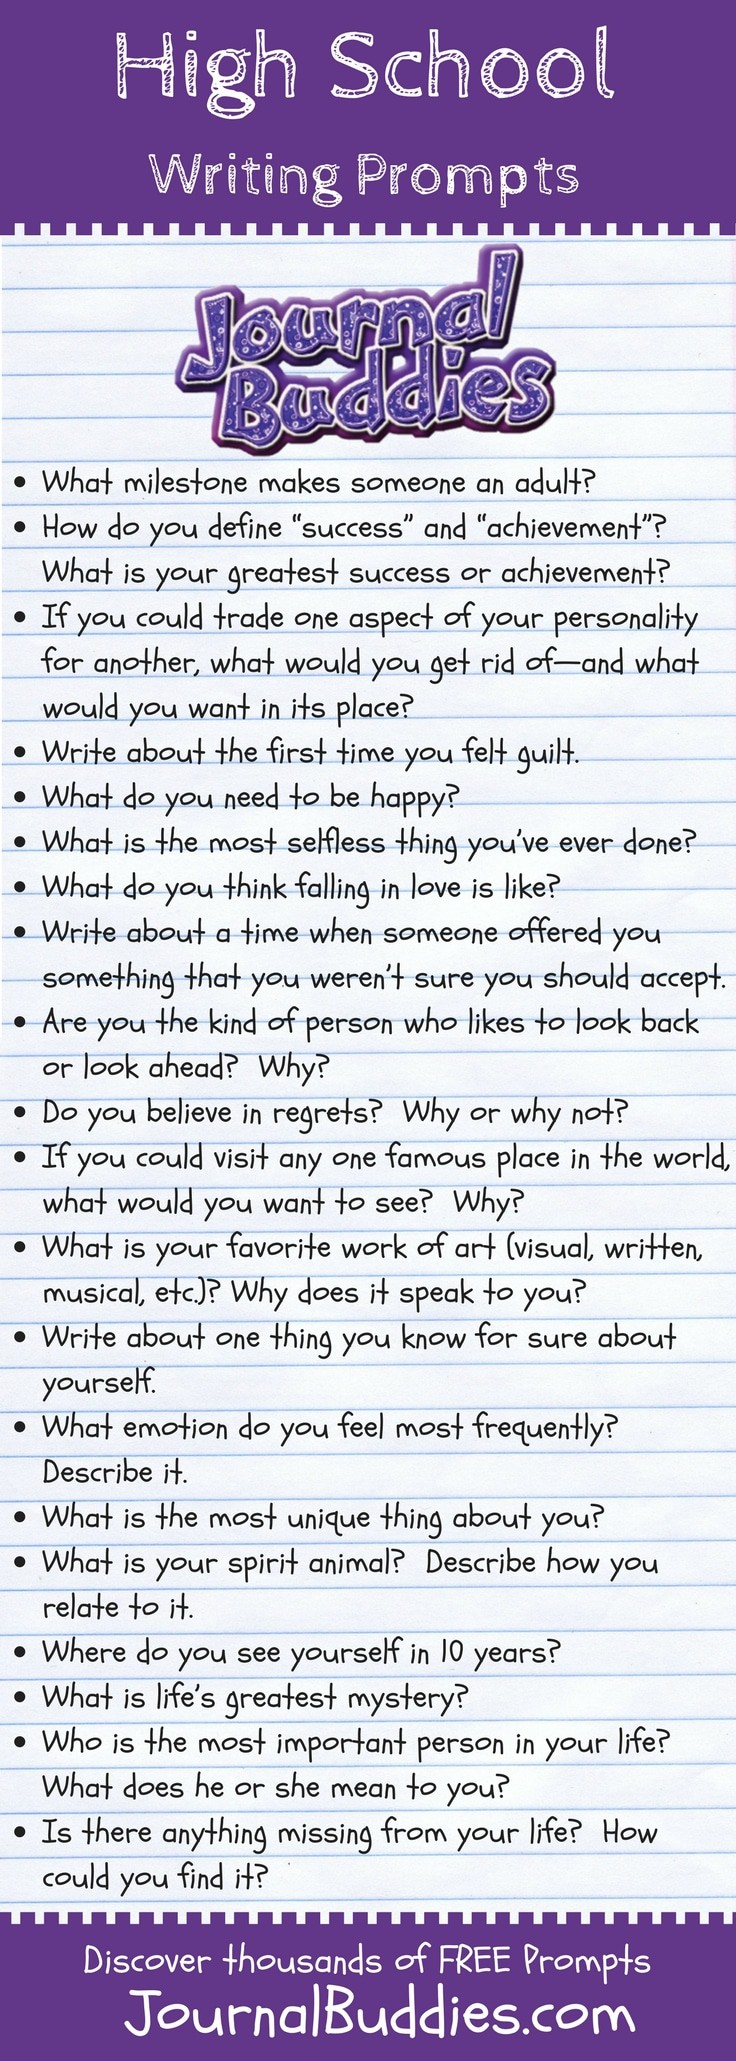 great writing prompts for your high school classroom  a unique set of  thoughtprovoking writing prompts especially for the high  school classroom